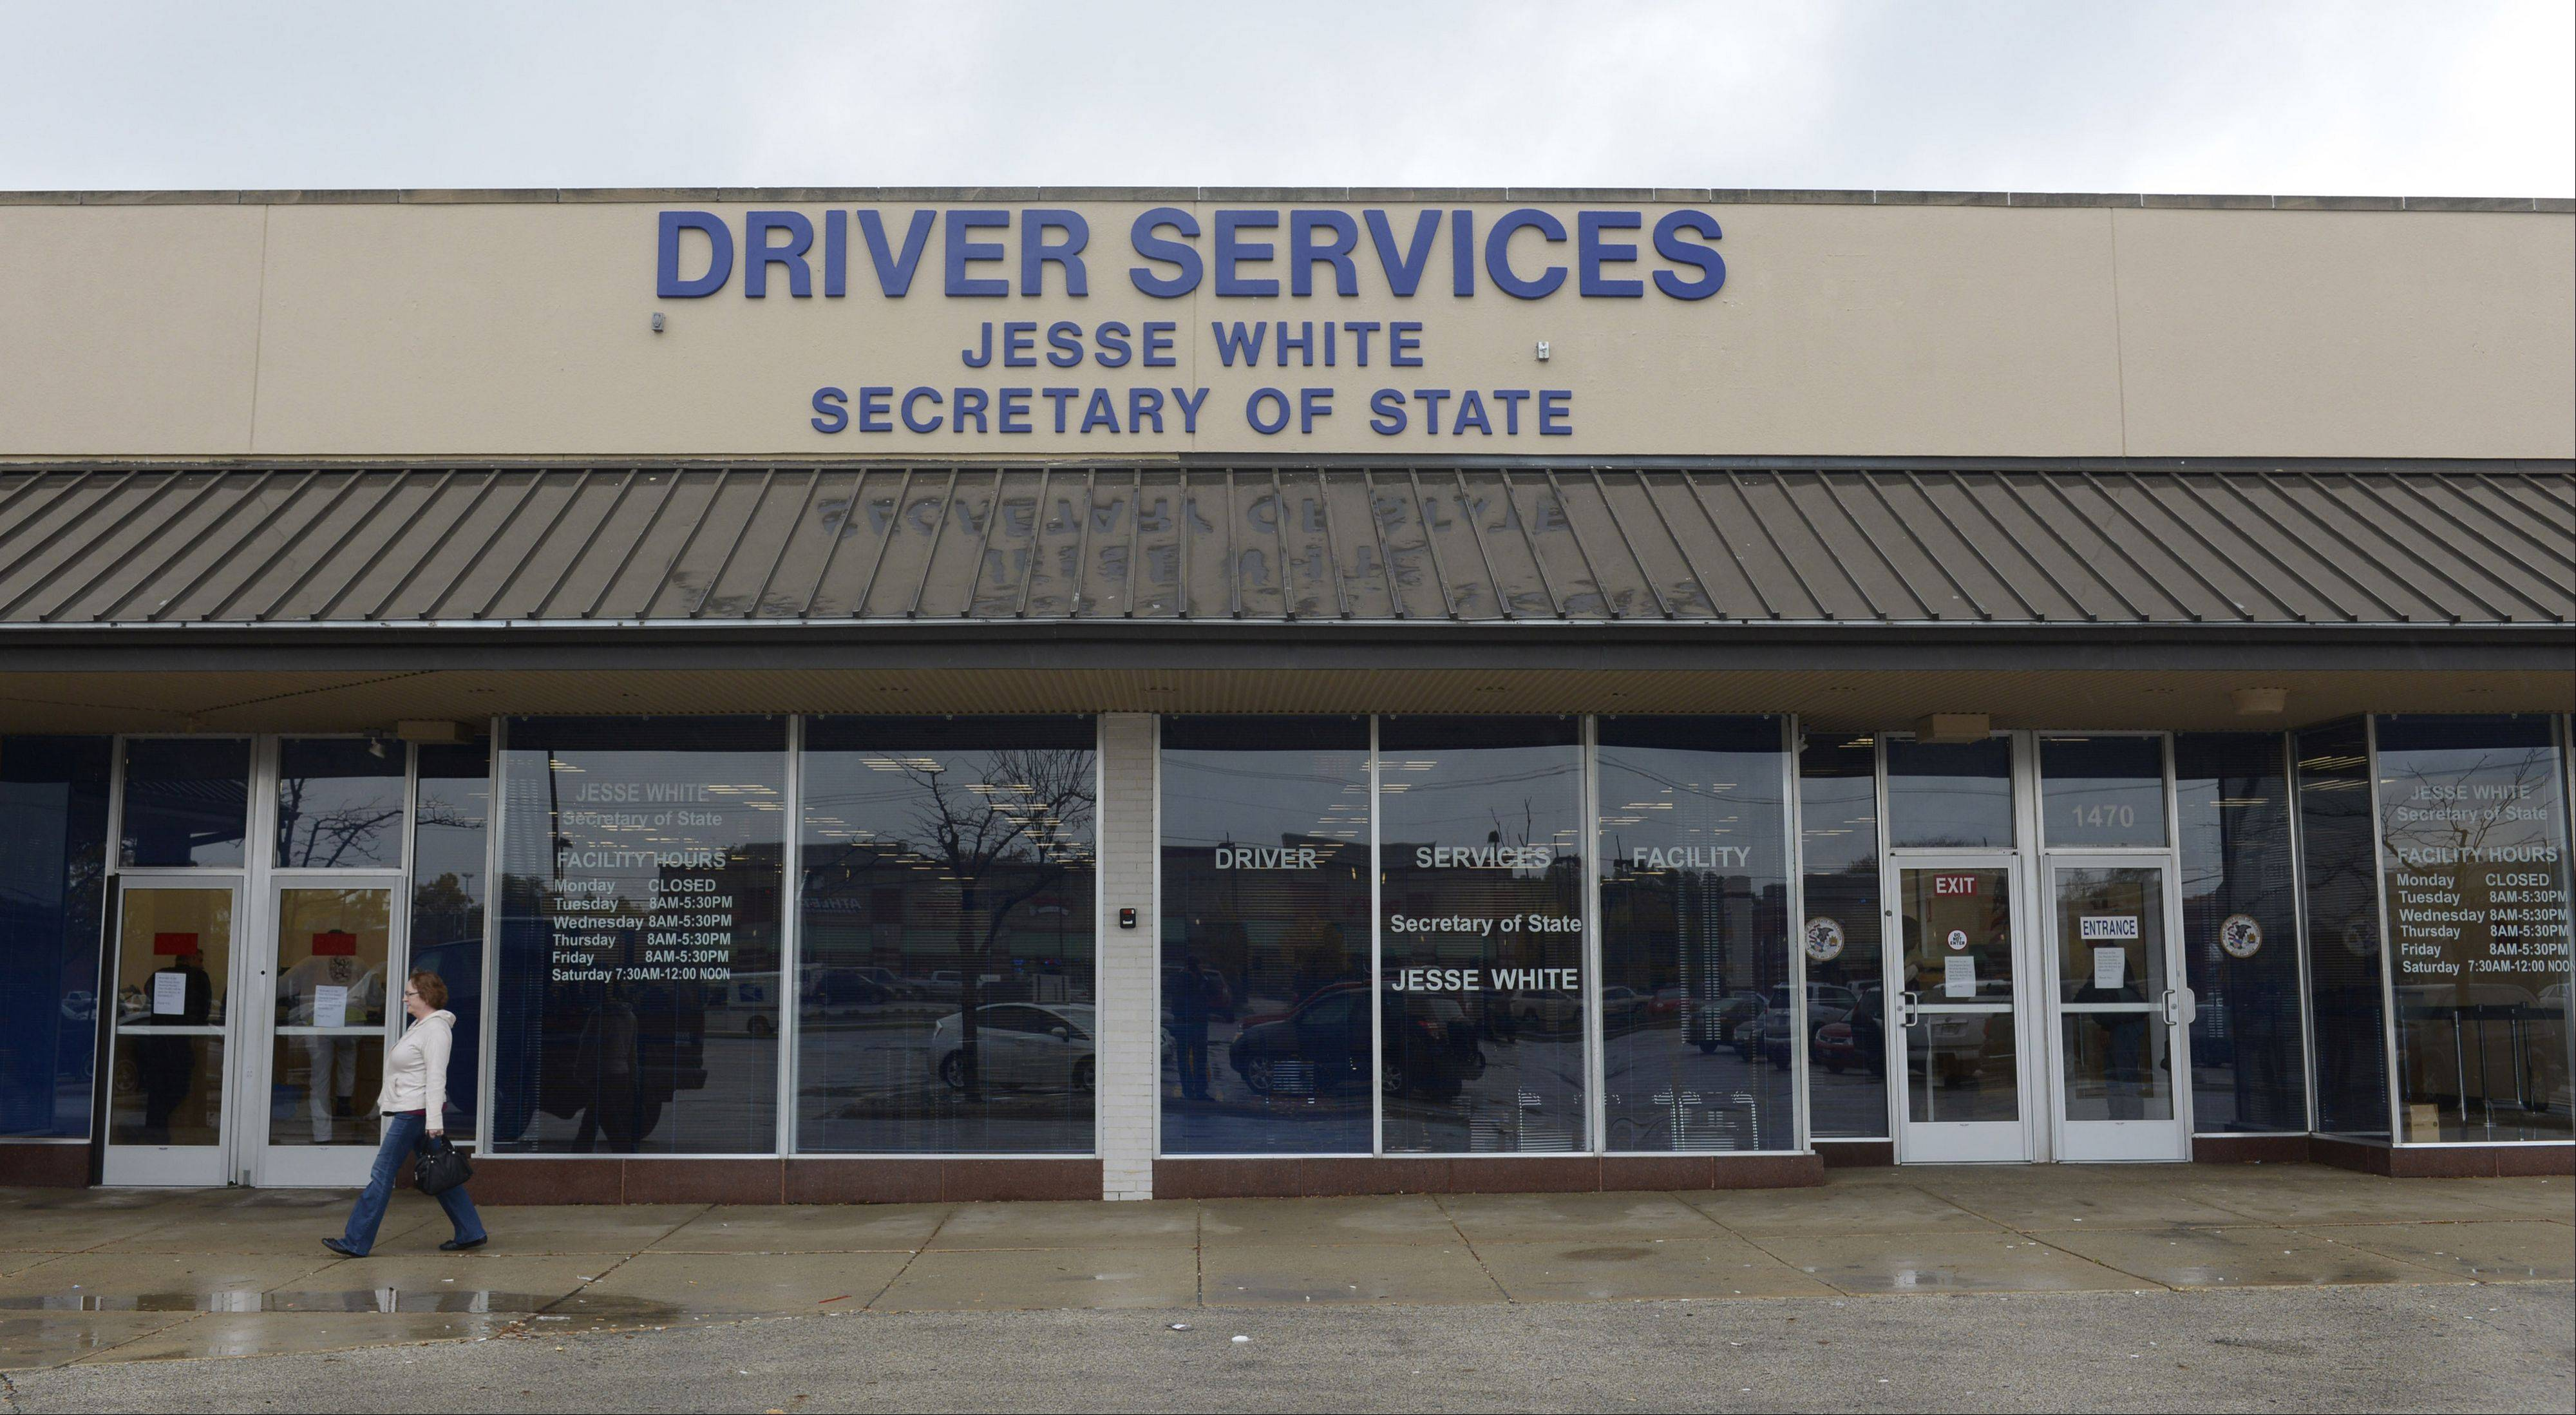 Secretary of state office to open Nov. 5 in Des Plaines